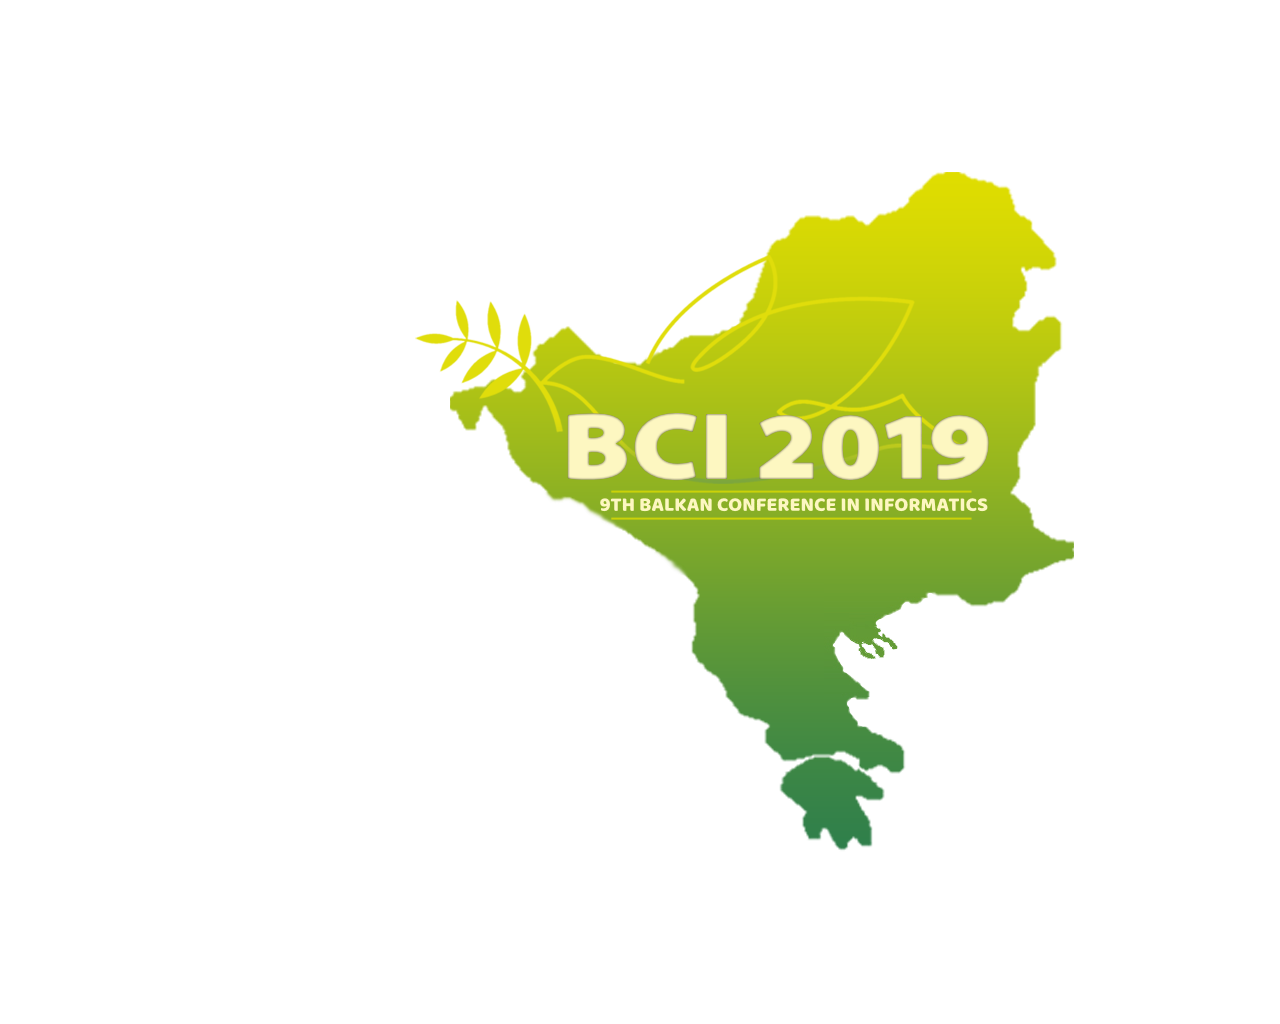 9th Balkan Conference in Informatics (BCI 2019)